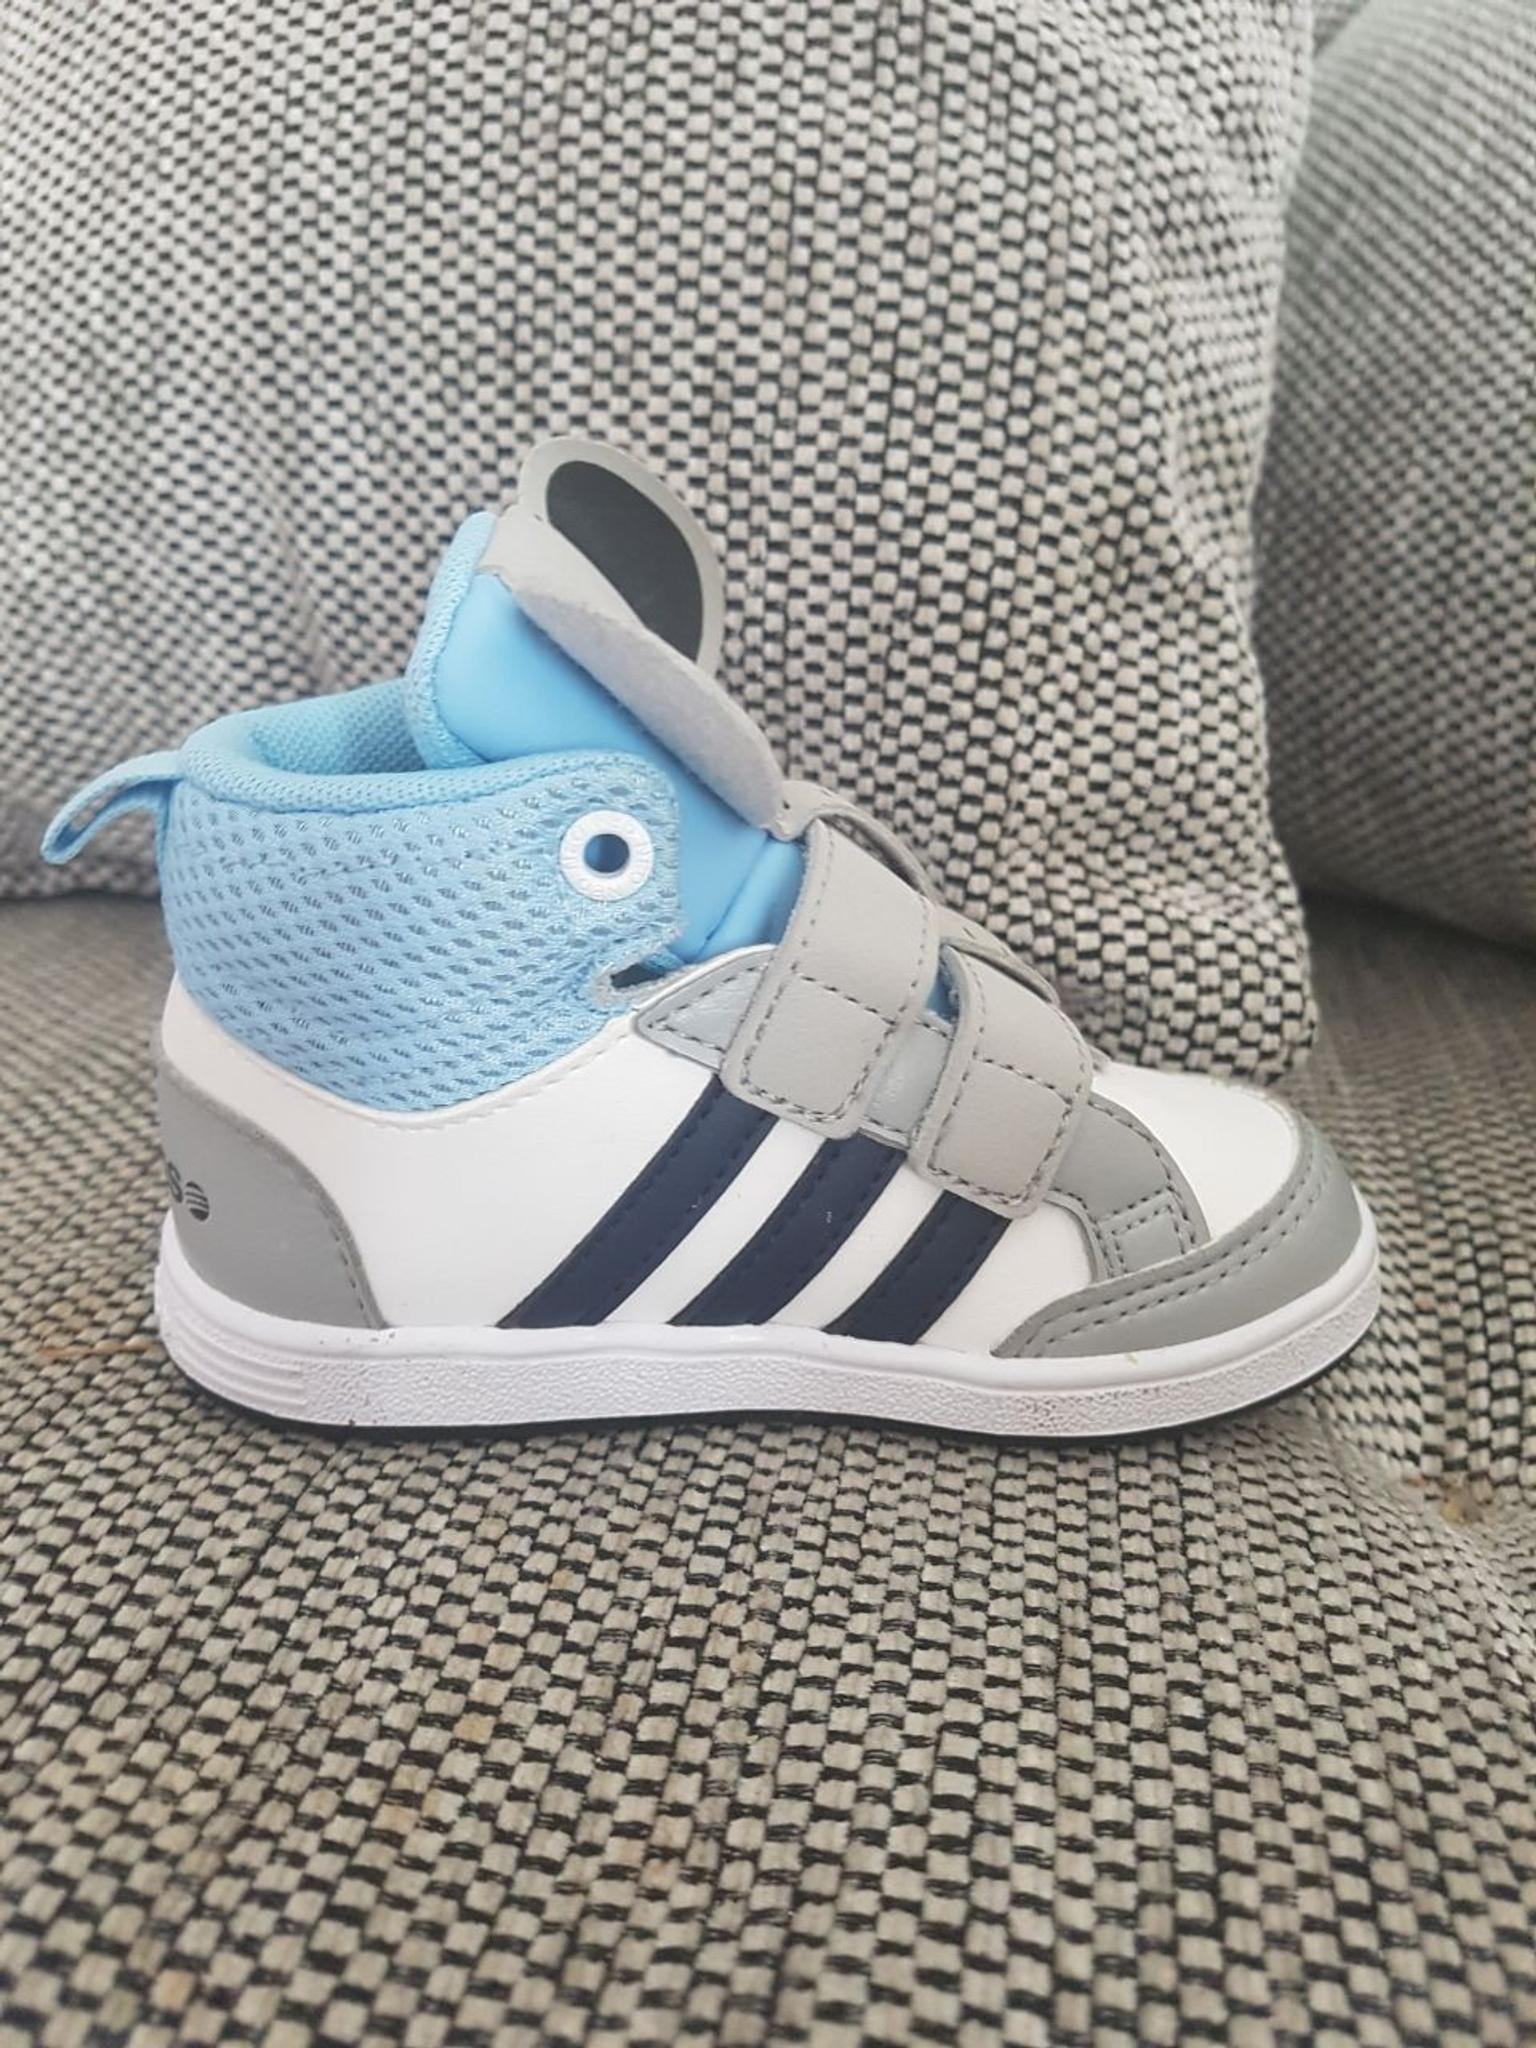 Adidas Schuhe in 46509 Xanten for €25.00 for sale | Shpock